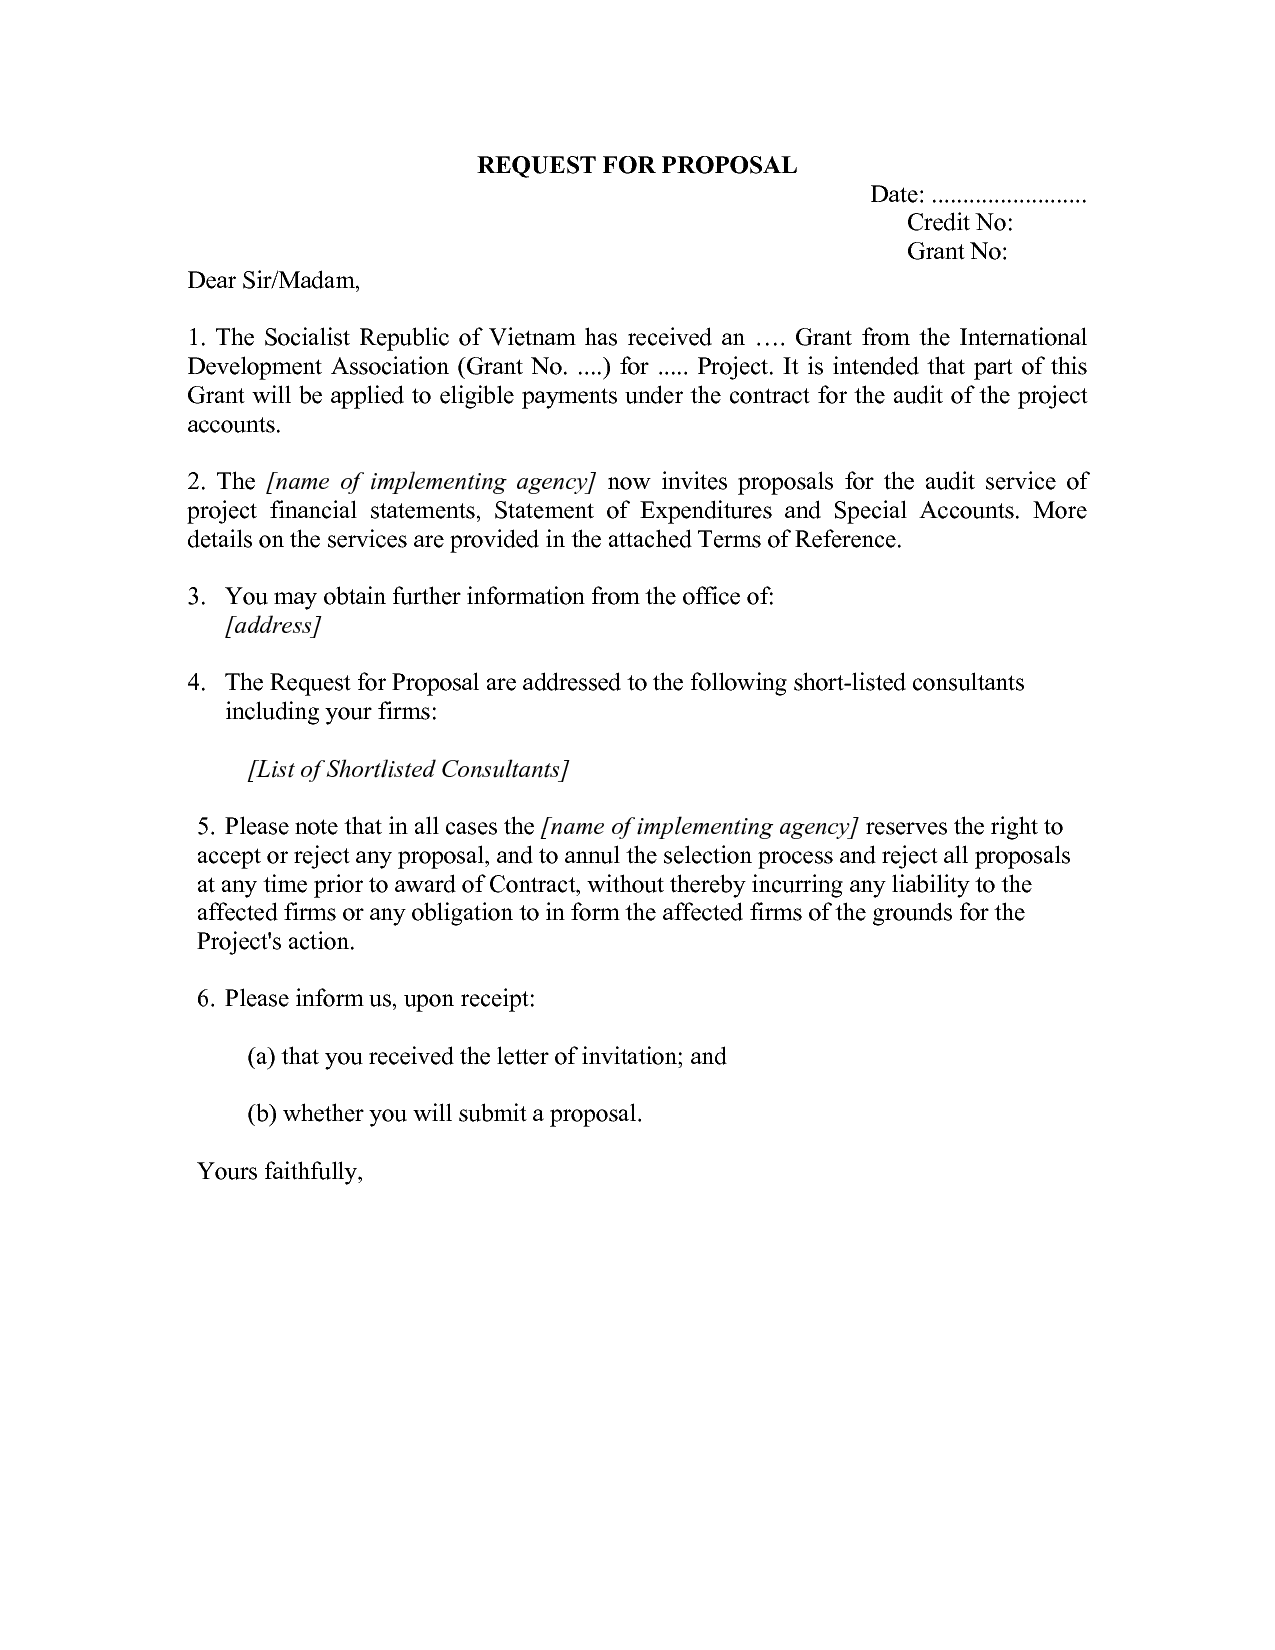 Proposal Letter To A Client